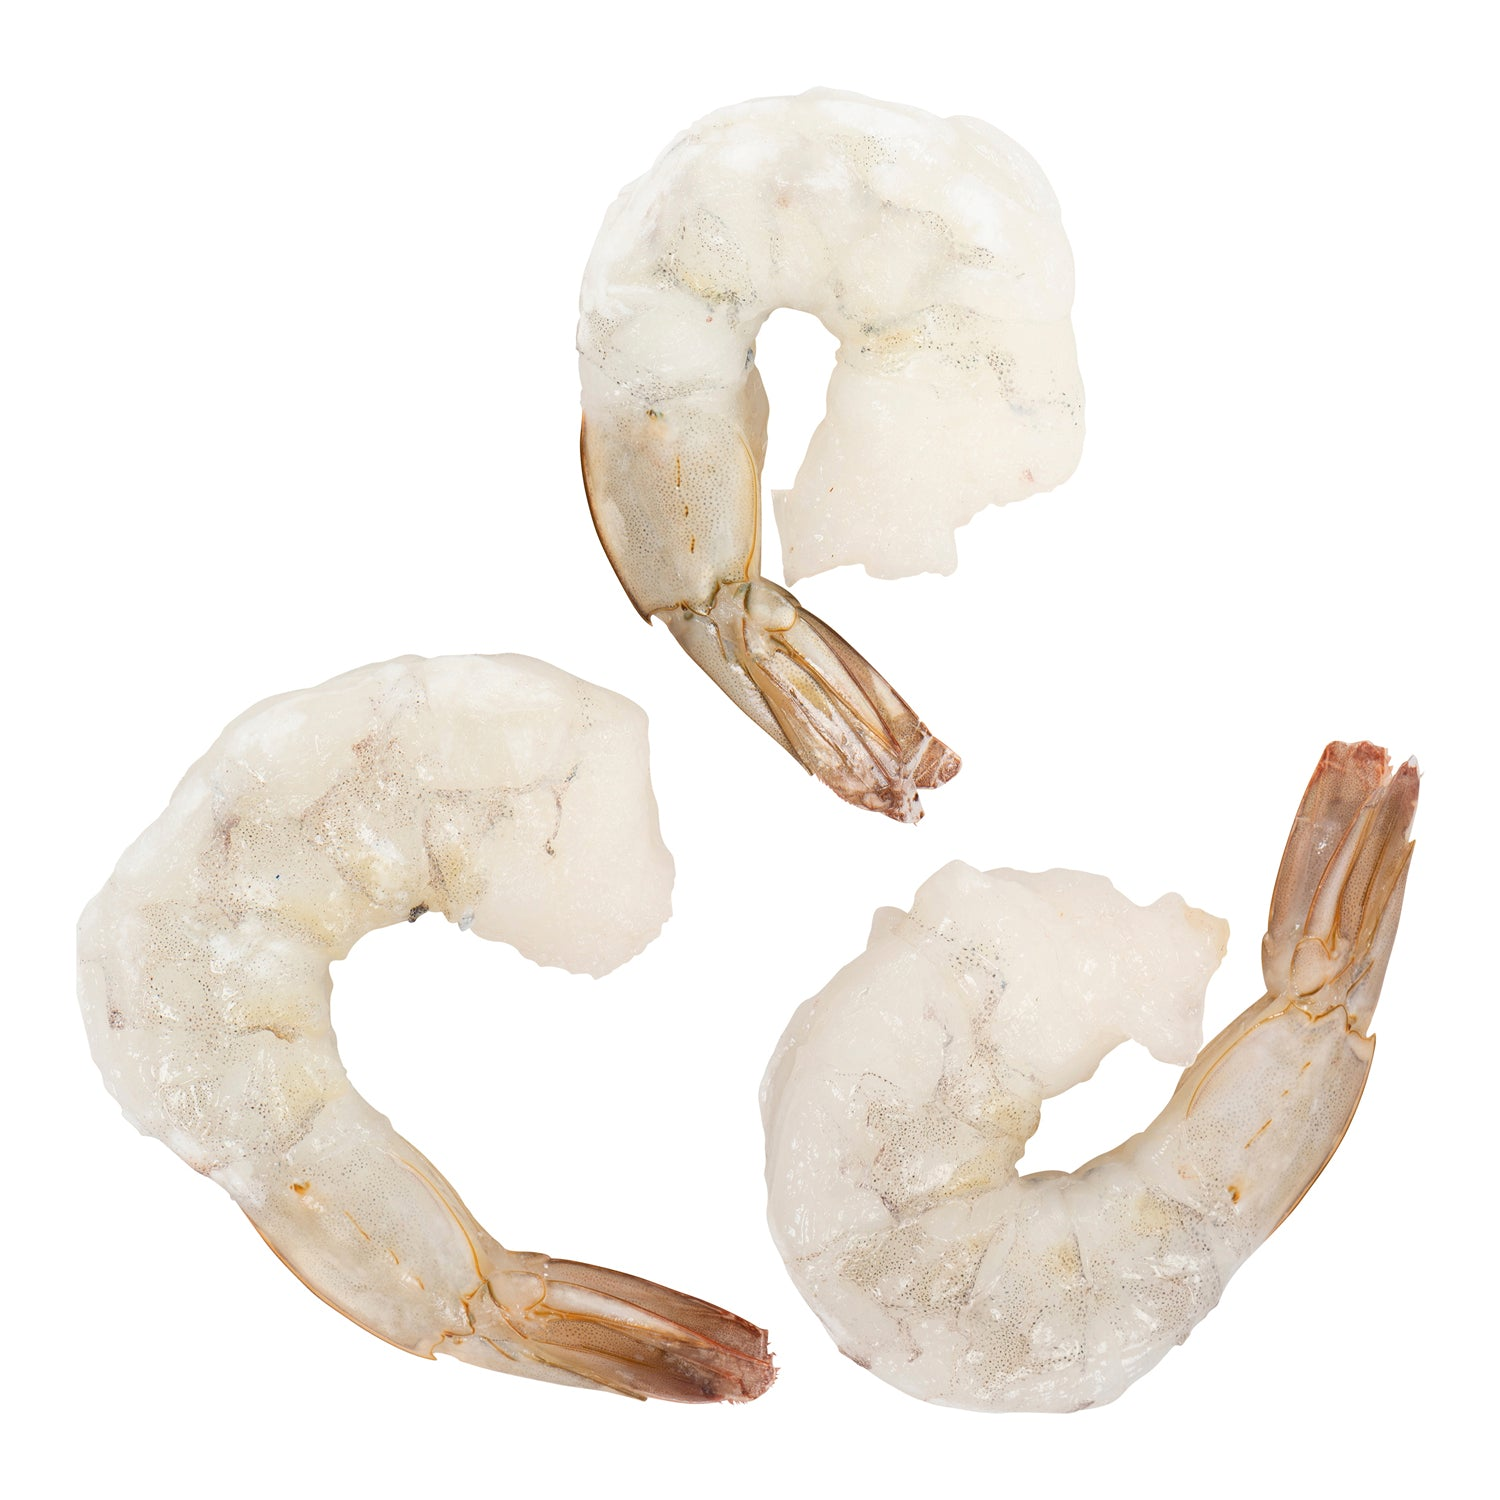 Sysco Portico Frozen Raw Extra Jumbo Shrimp Peeled & Deveined With Tail On 2.5 lb - 2 Pack [$11.60/lb]